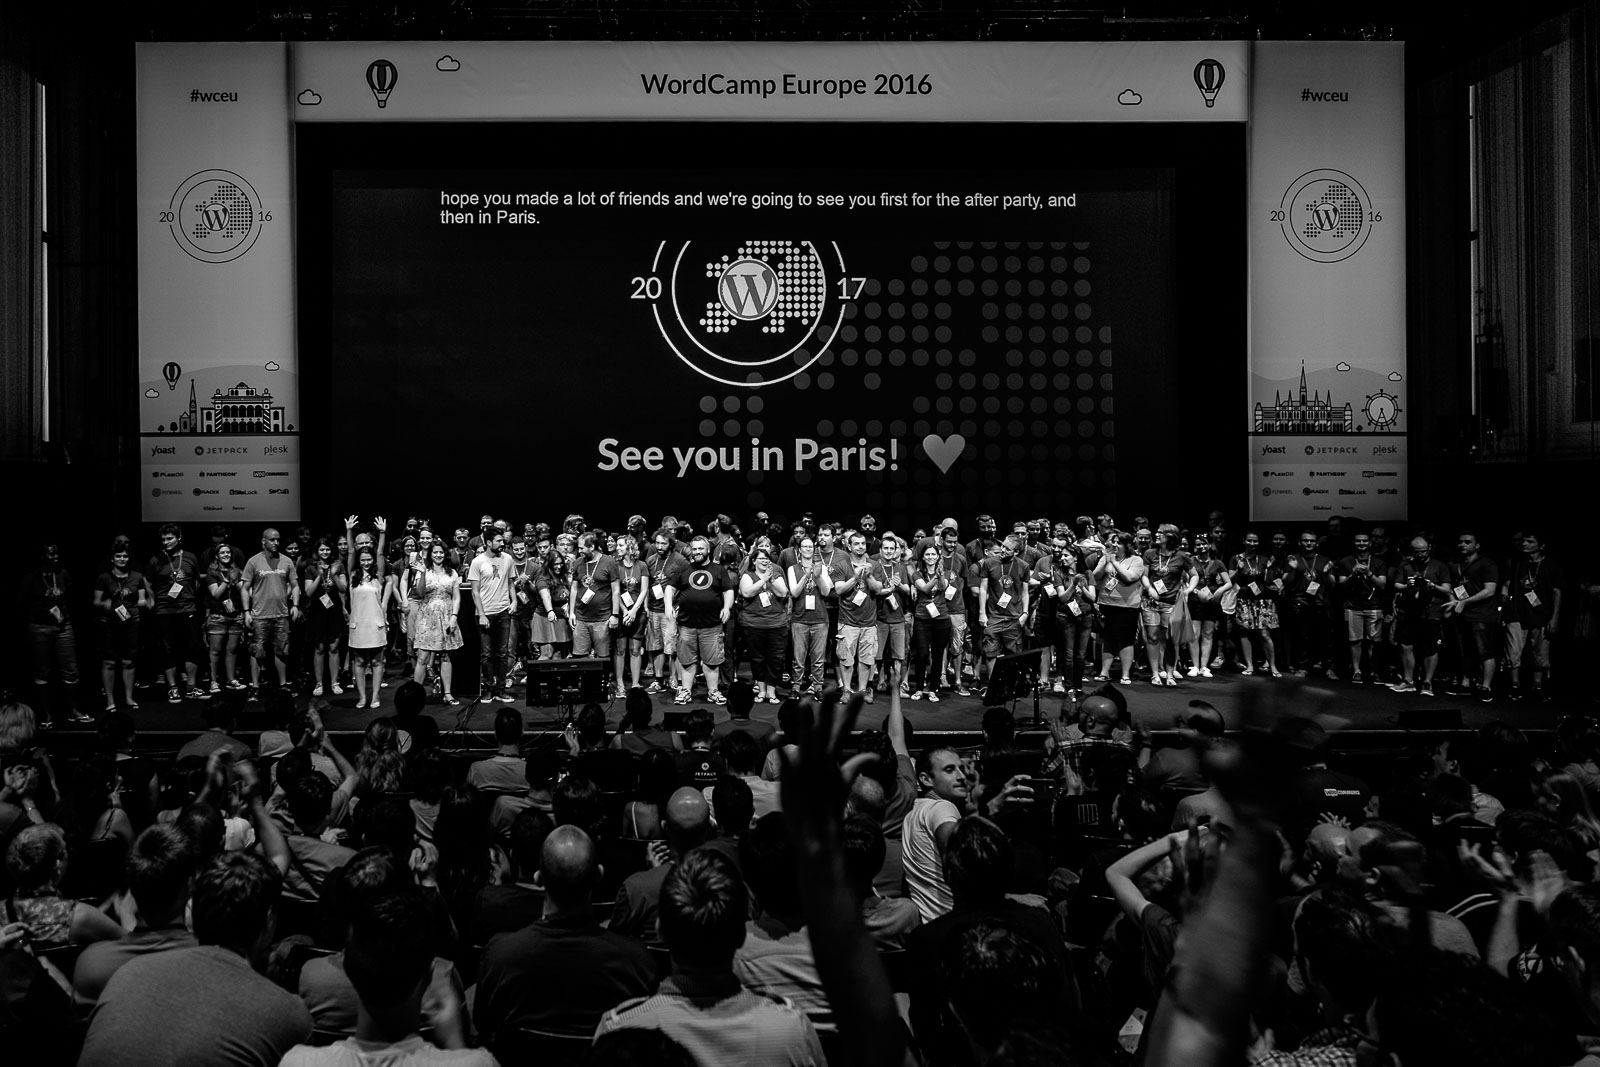 WordCamp Europe 2016 organizers and volunteers on stage